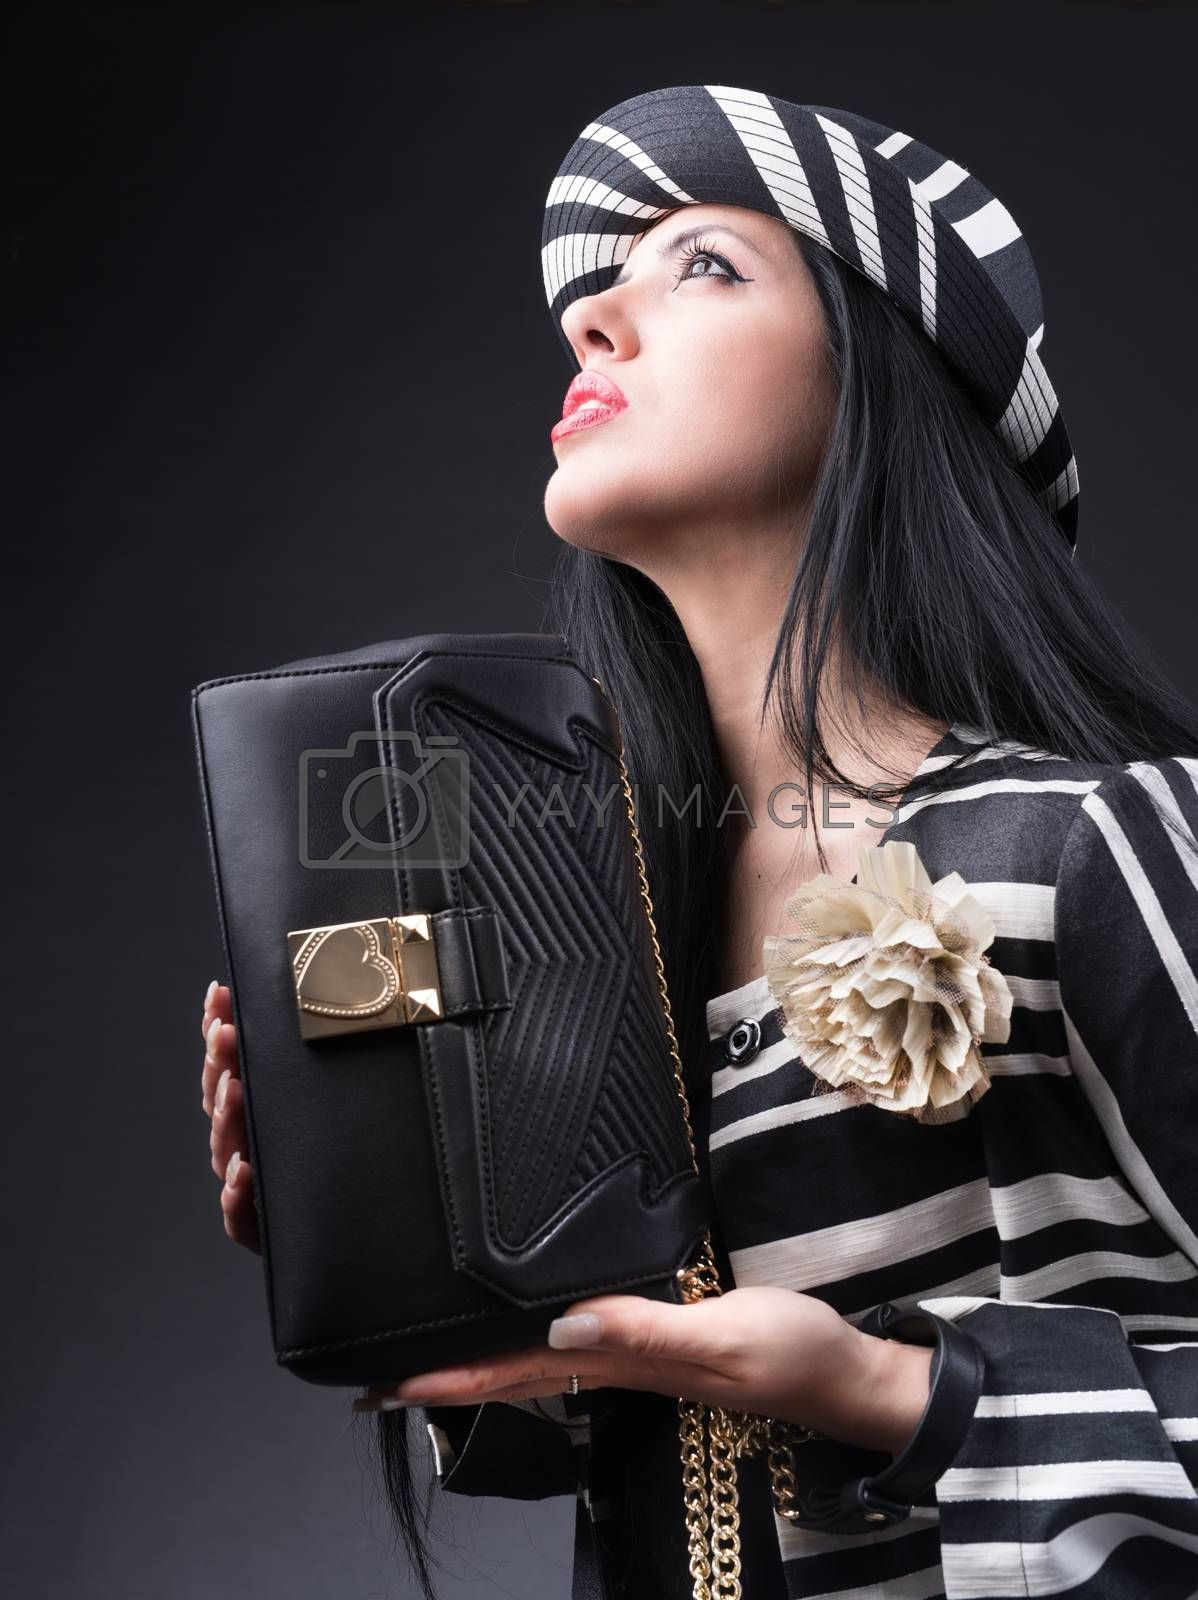 Style girl with bag and black and white outfit